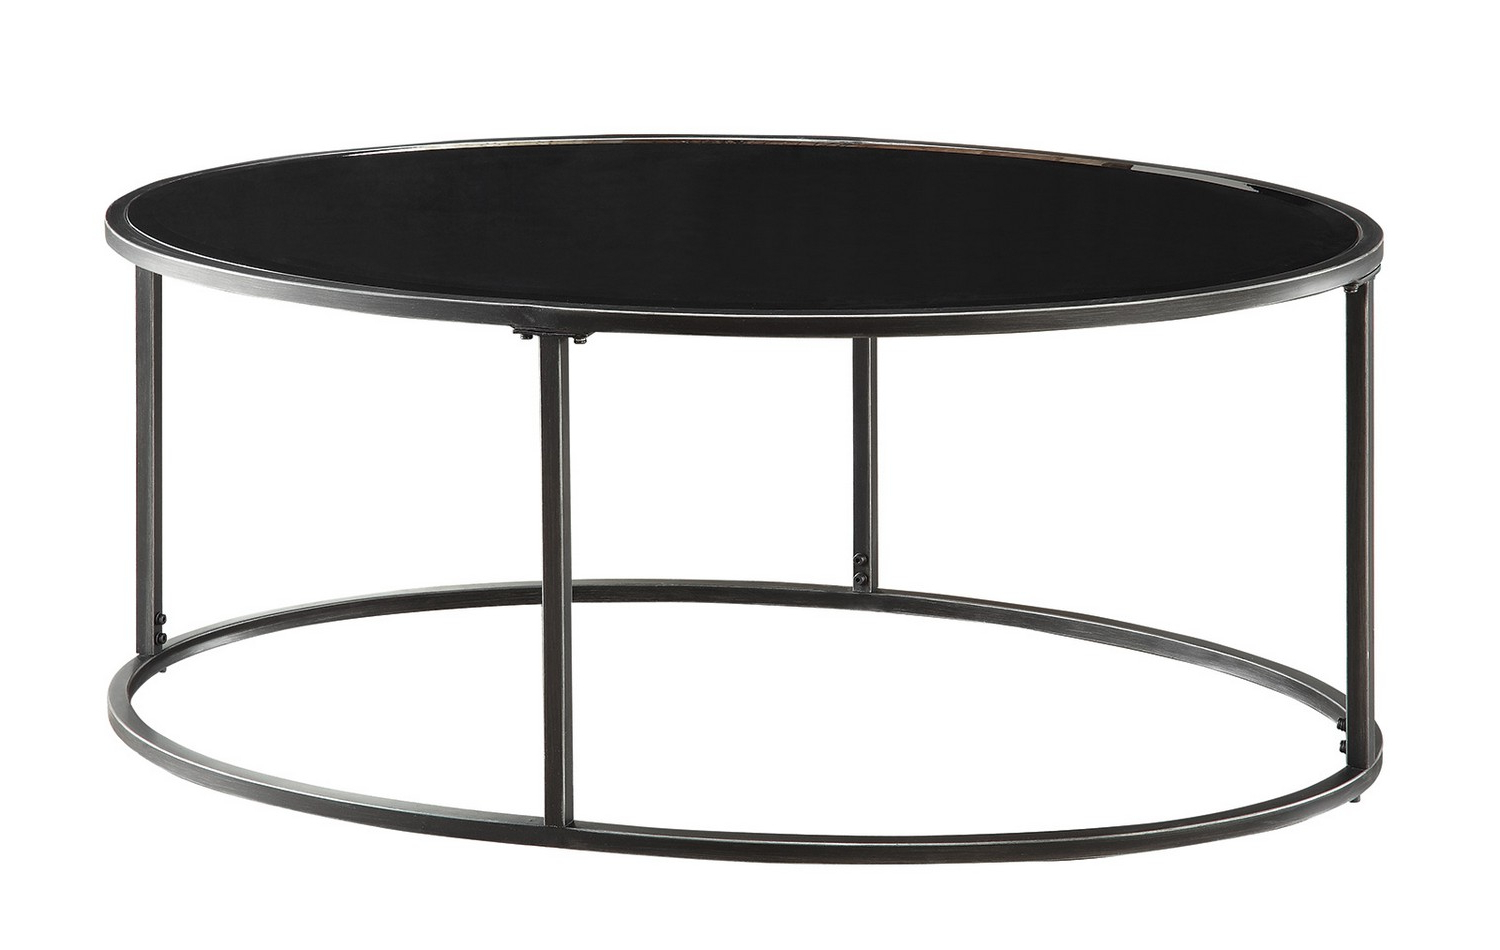 Coaster 704398 Coffee/cocktail Table – Gunmetal Frame 704398 At Pertaining To Popular Gunmetal Coffee Tables (View 6 of 20)